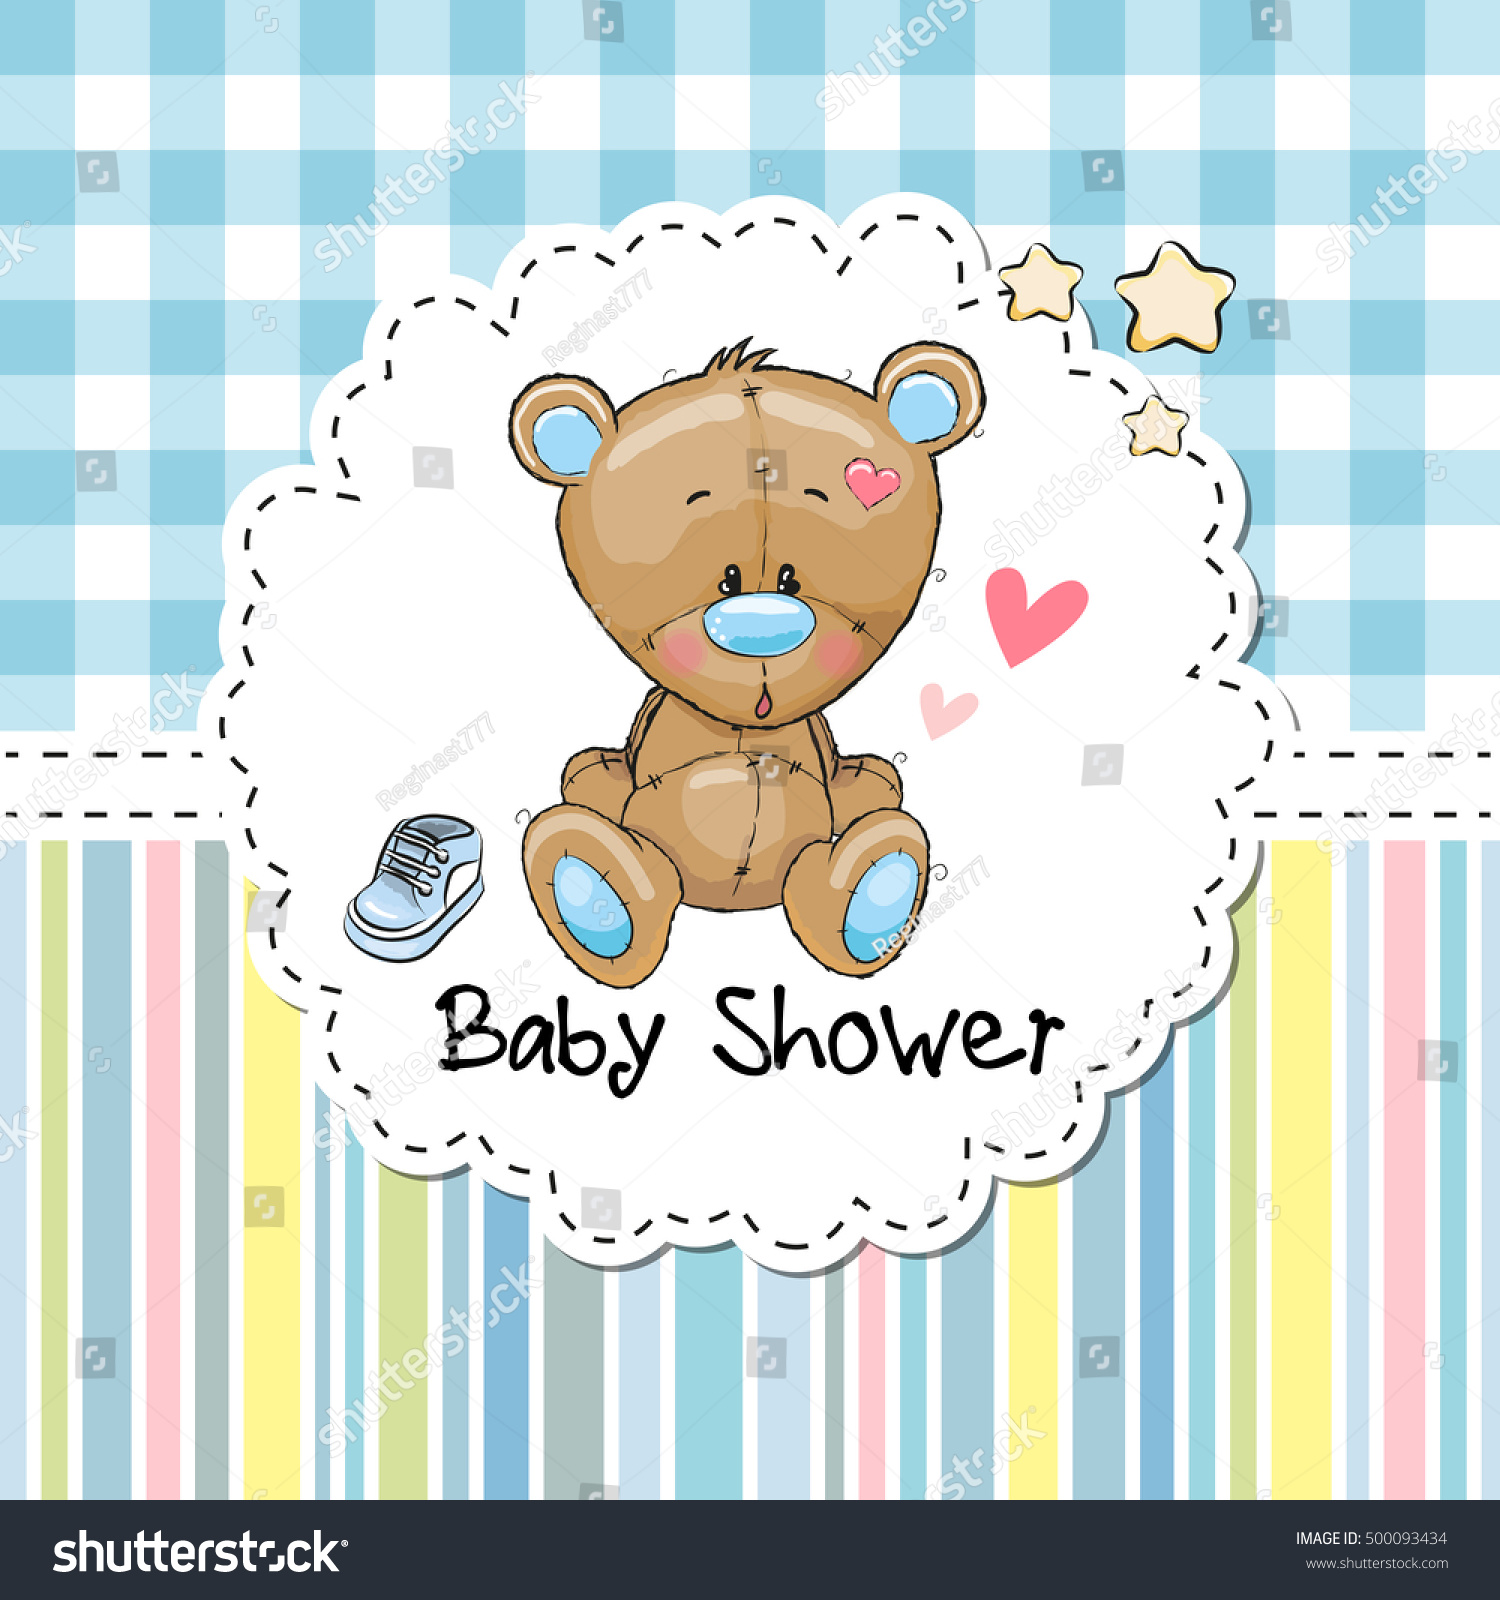 Baby Shower Greeting Card With Cute Cartoon Teddy Bear